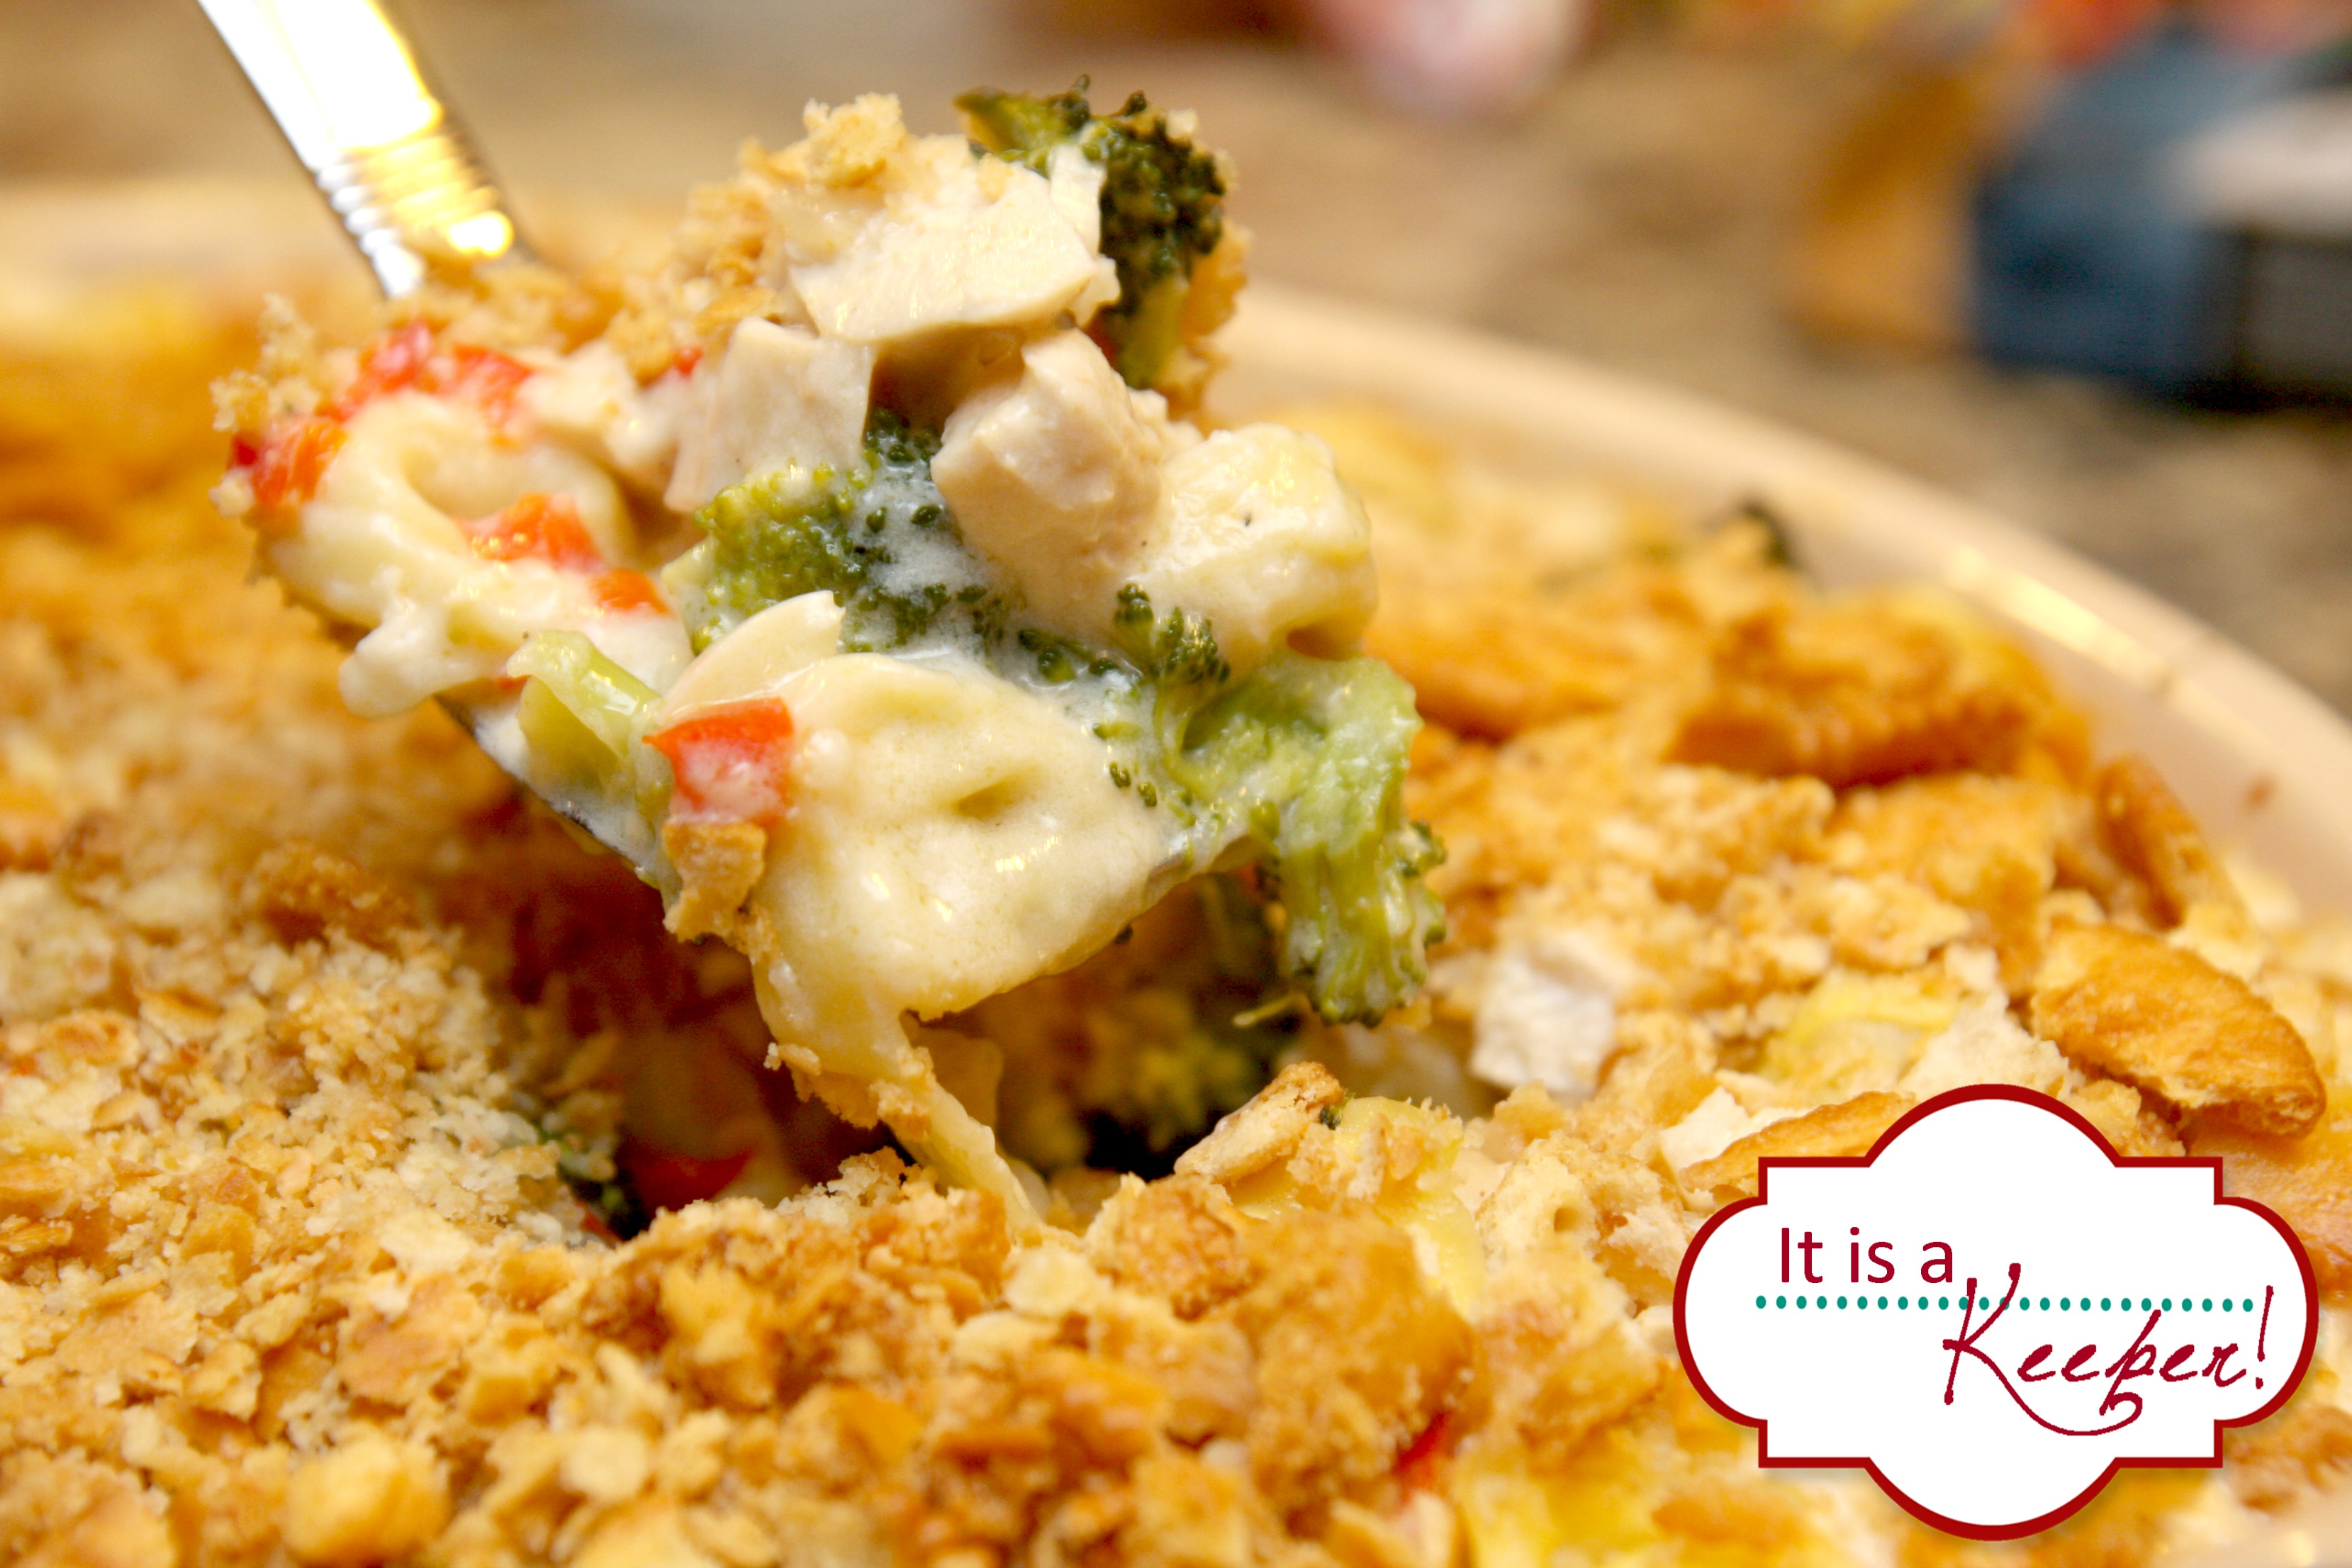 Creamy Chicken Tortellini Bake @ It's a Keeper